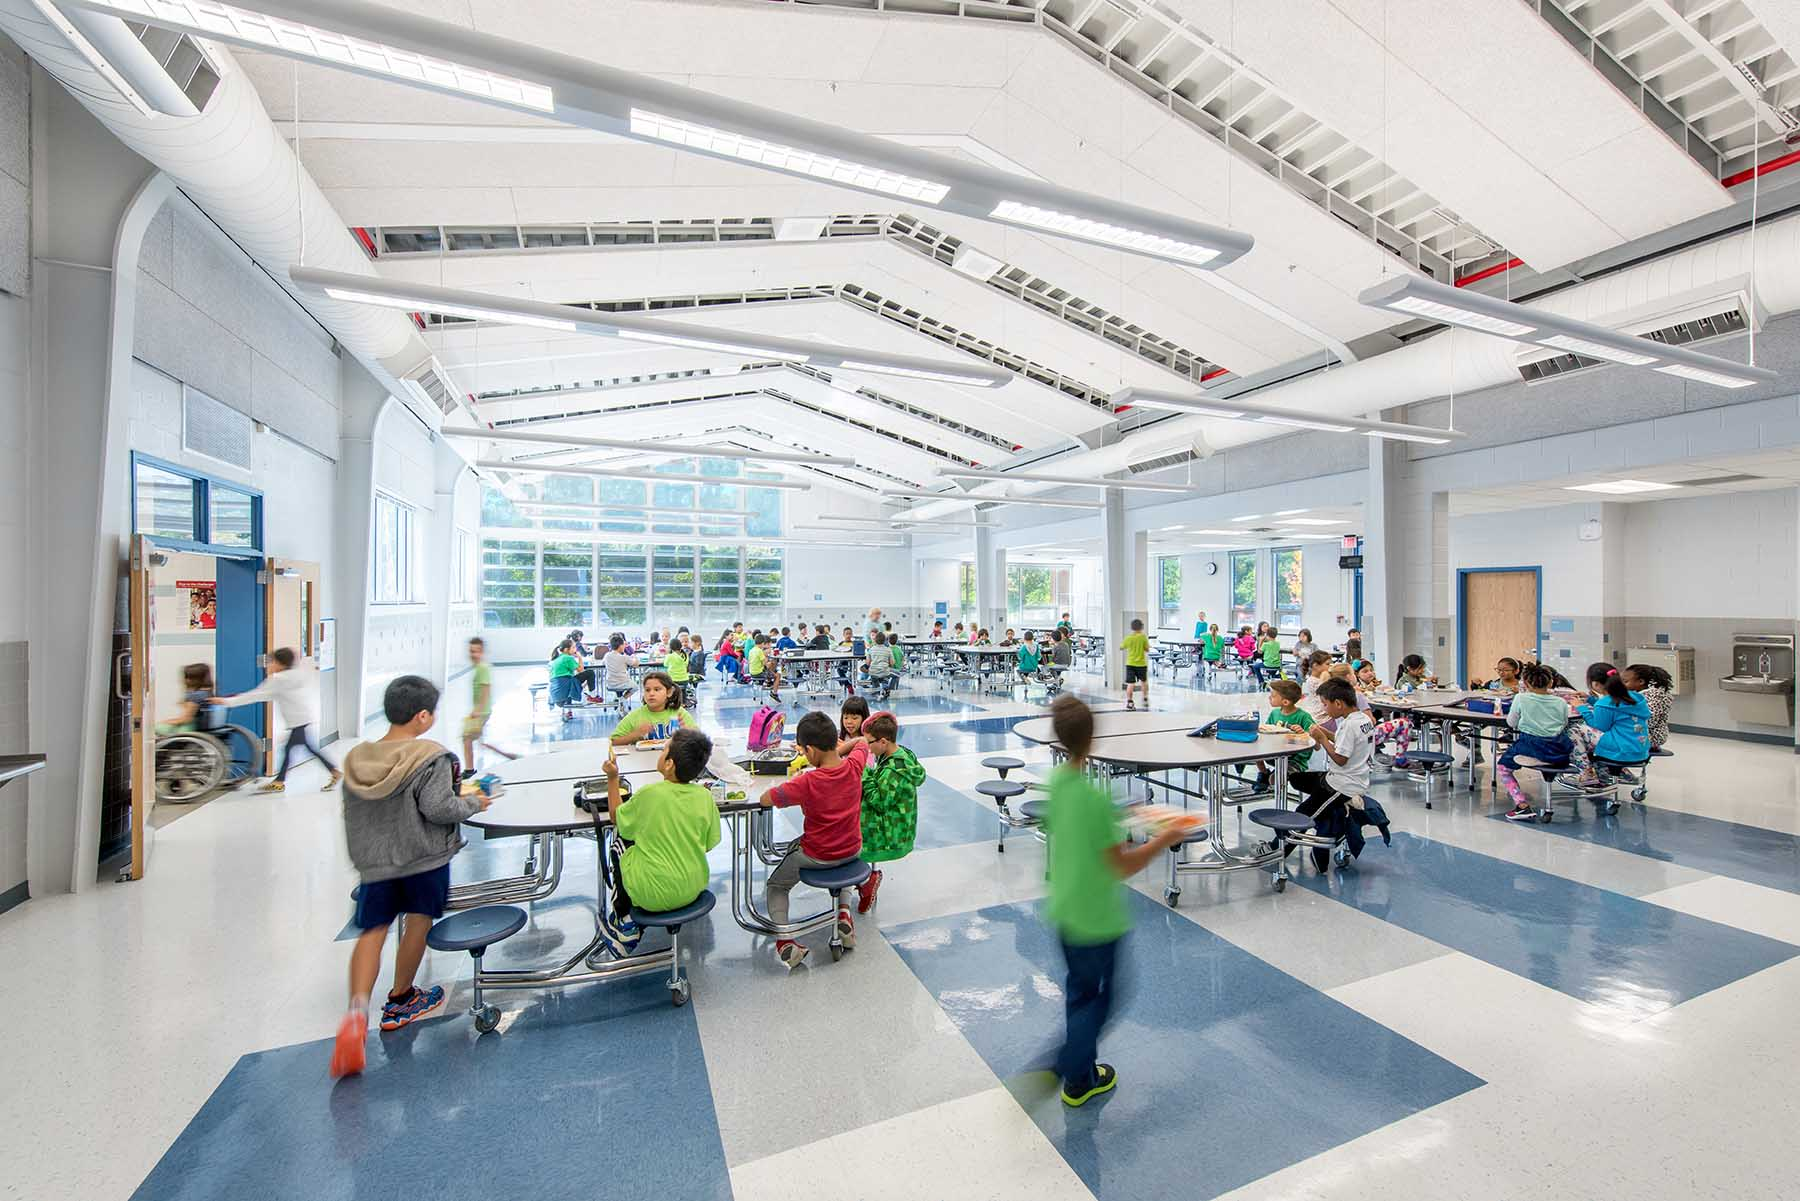 The new 12,300 SF music, art, and library wing redefines and expands the existing learning courtyard and acts as a connector between primary circulation axes.